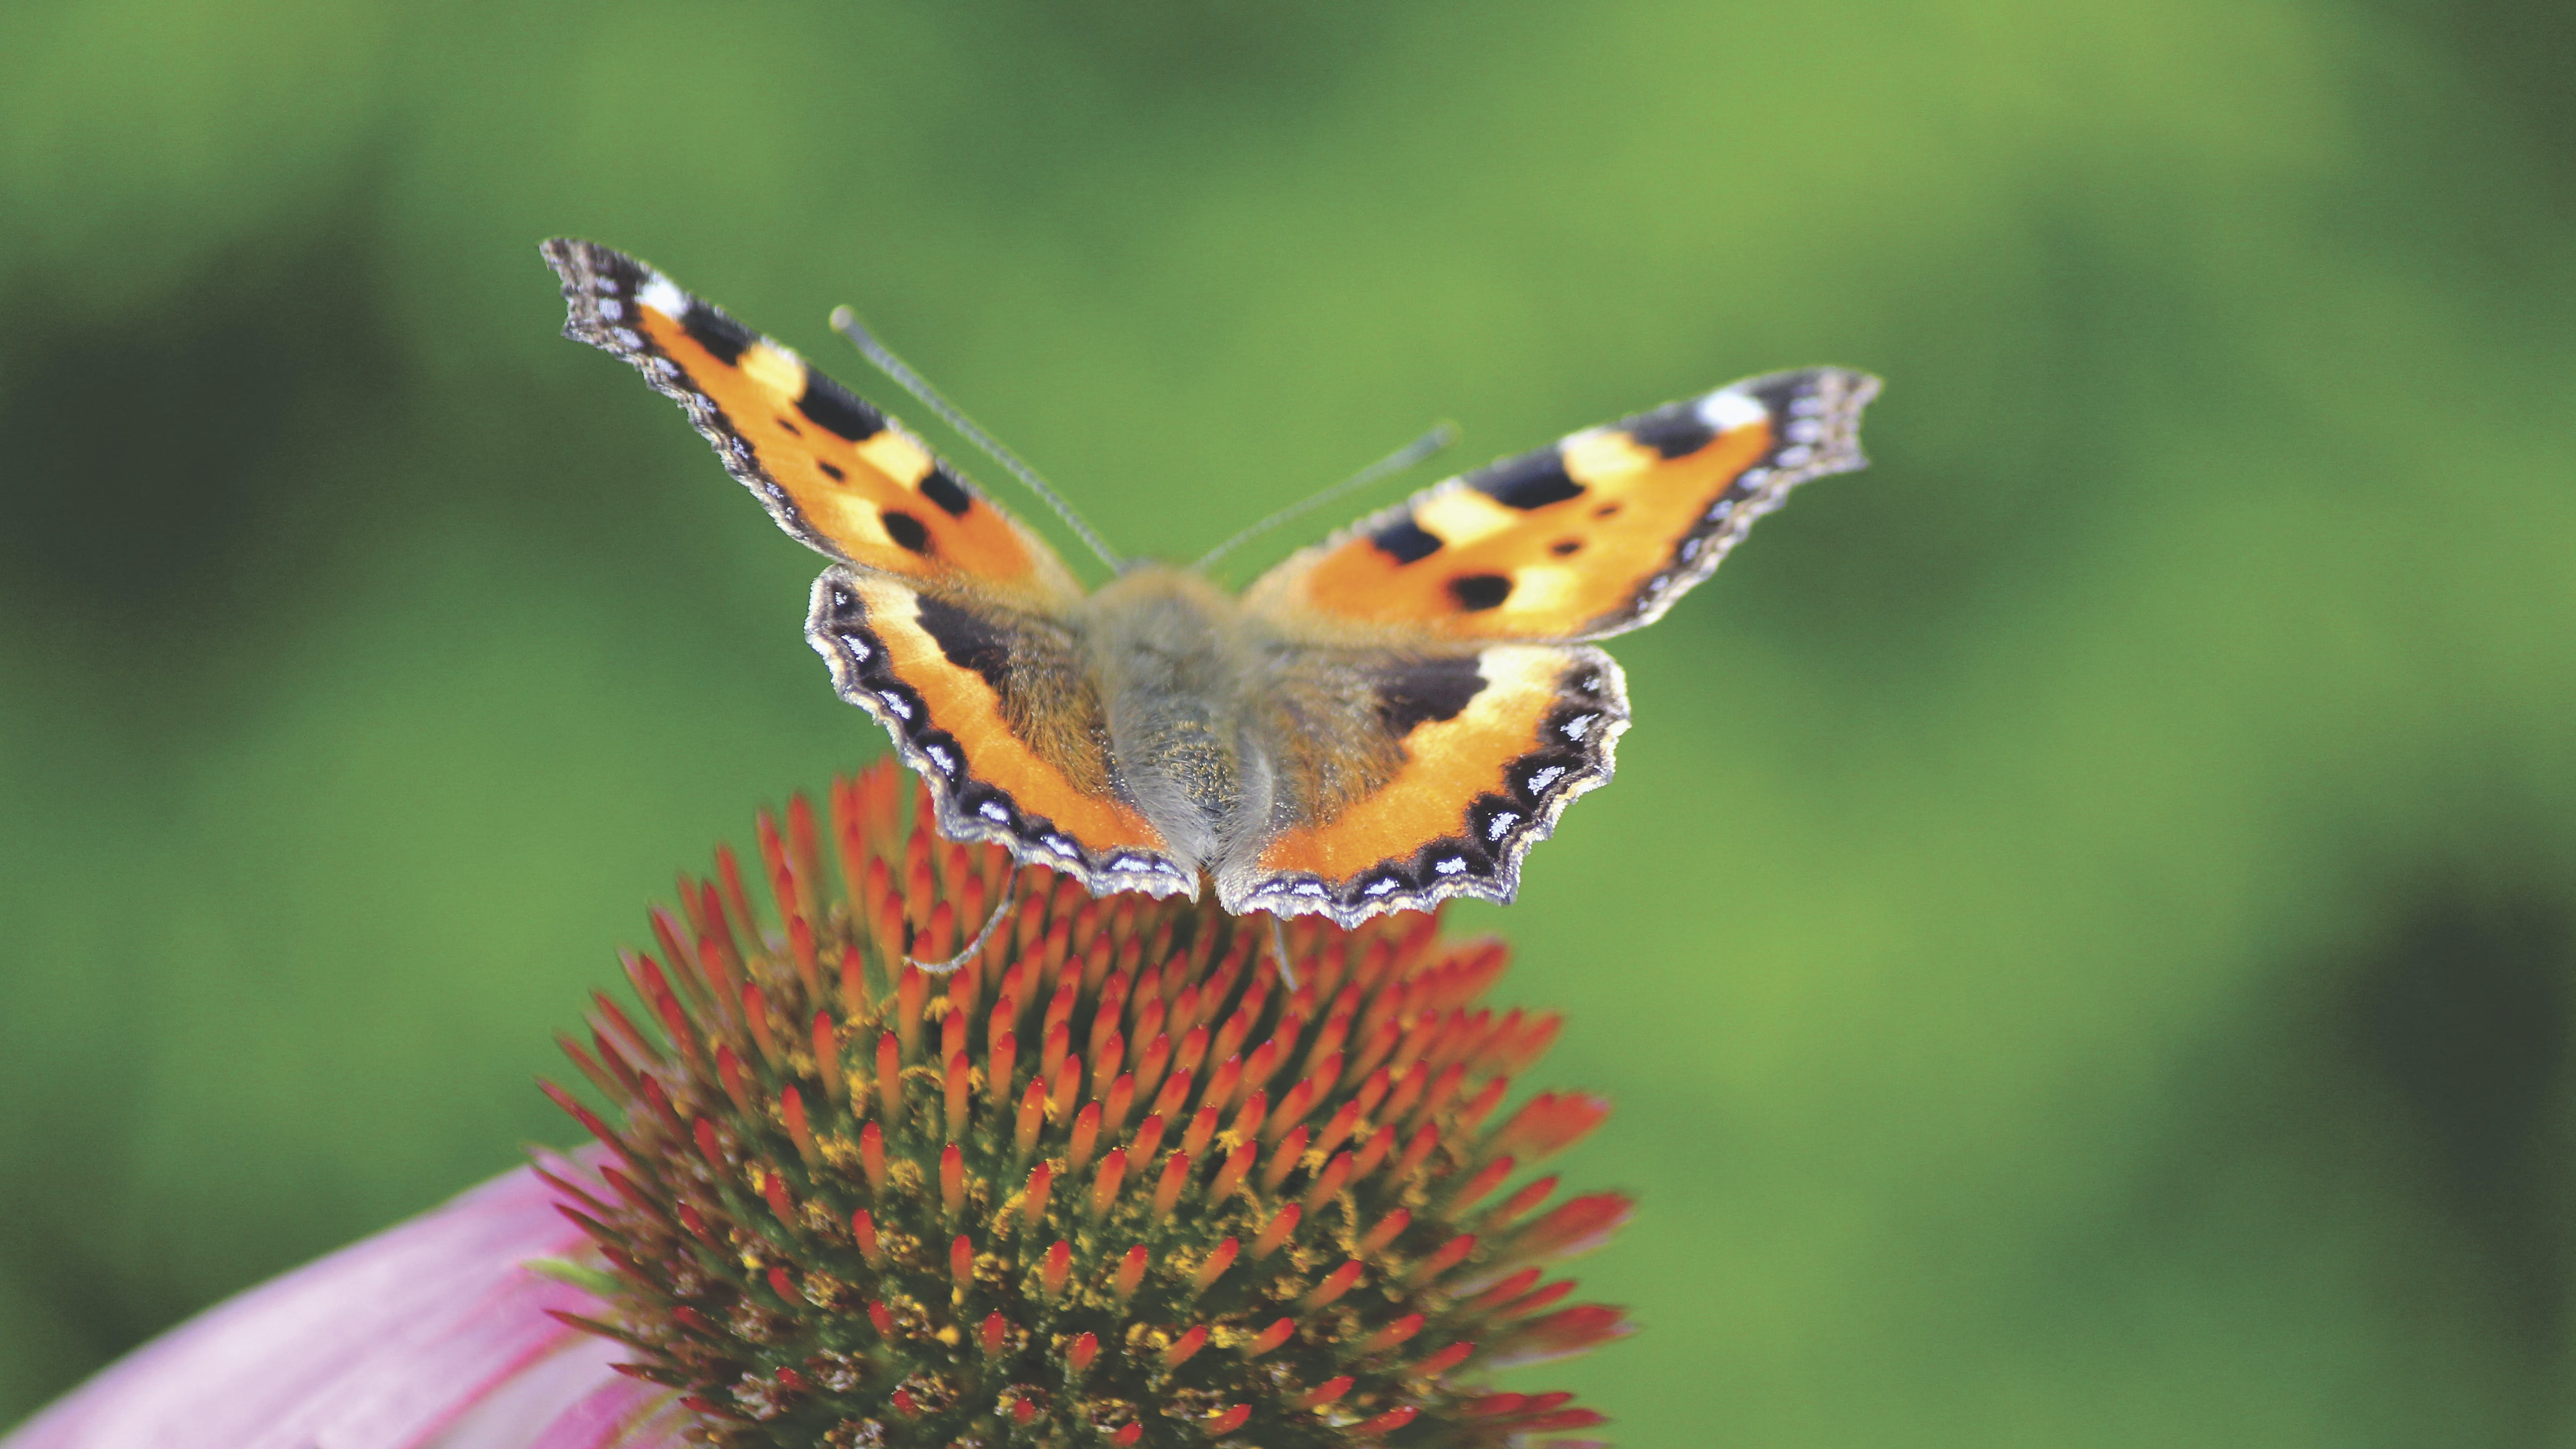 Brown Black and Gray Butterfly on Red and Green Flower